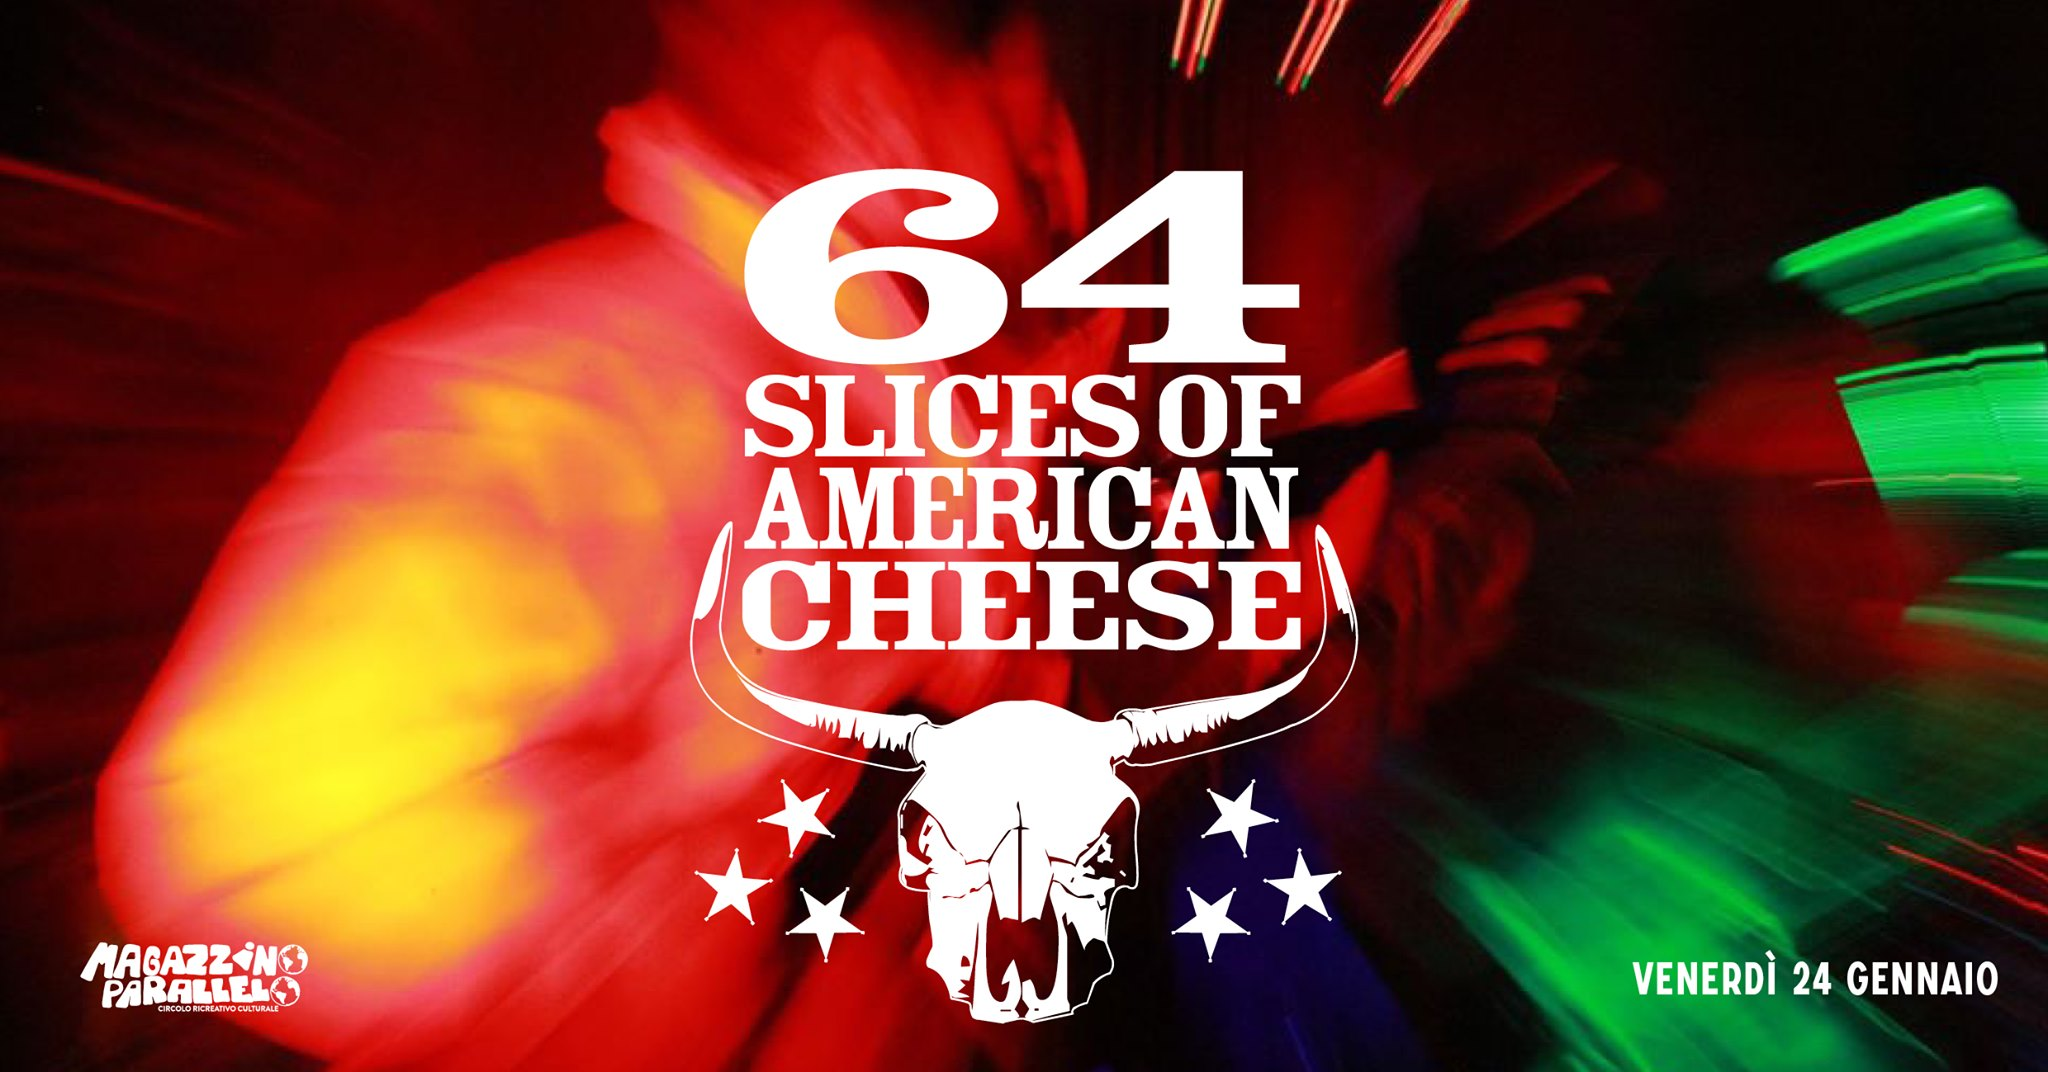 64 Slices of American Cheese / live / at Magazzino Parallelo